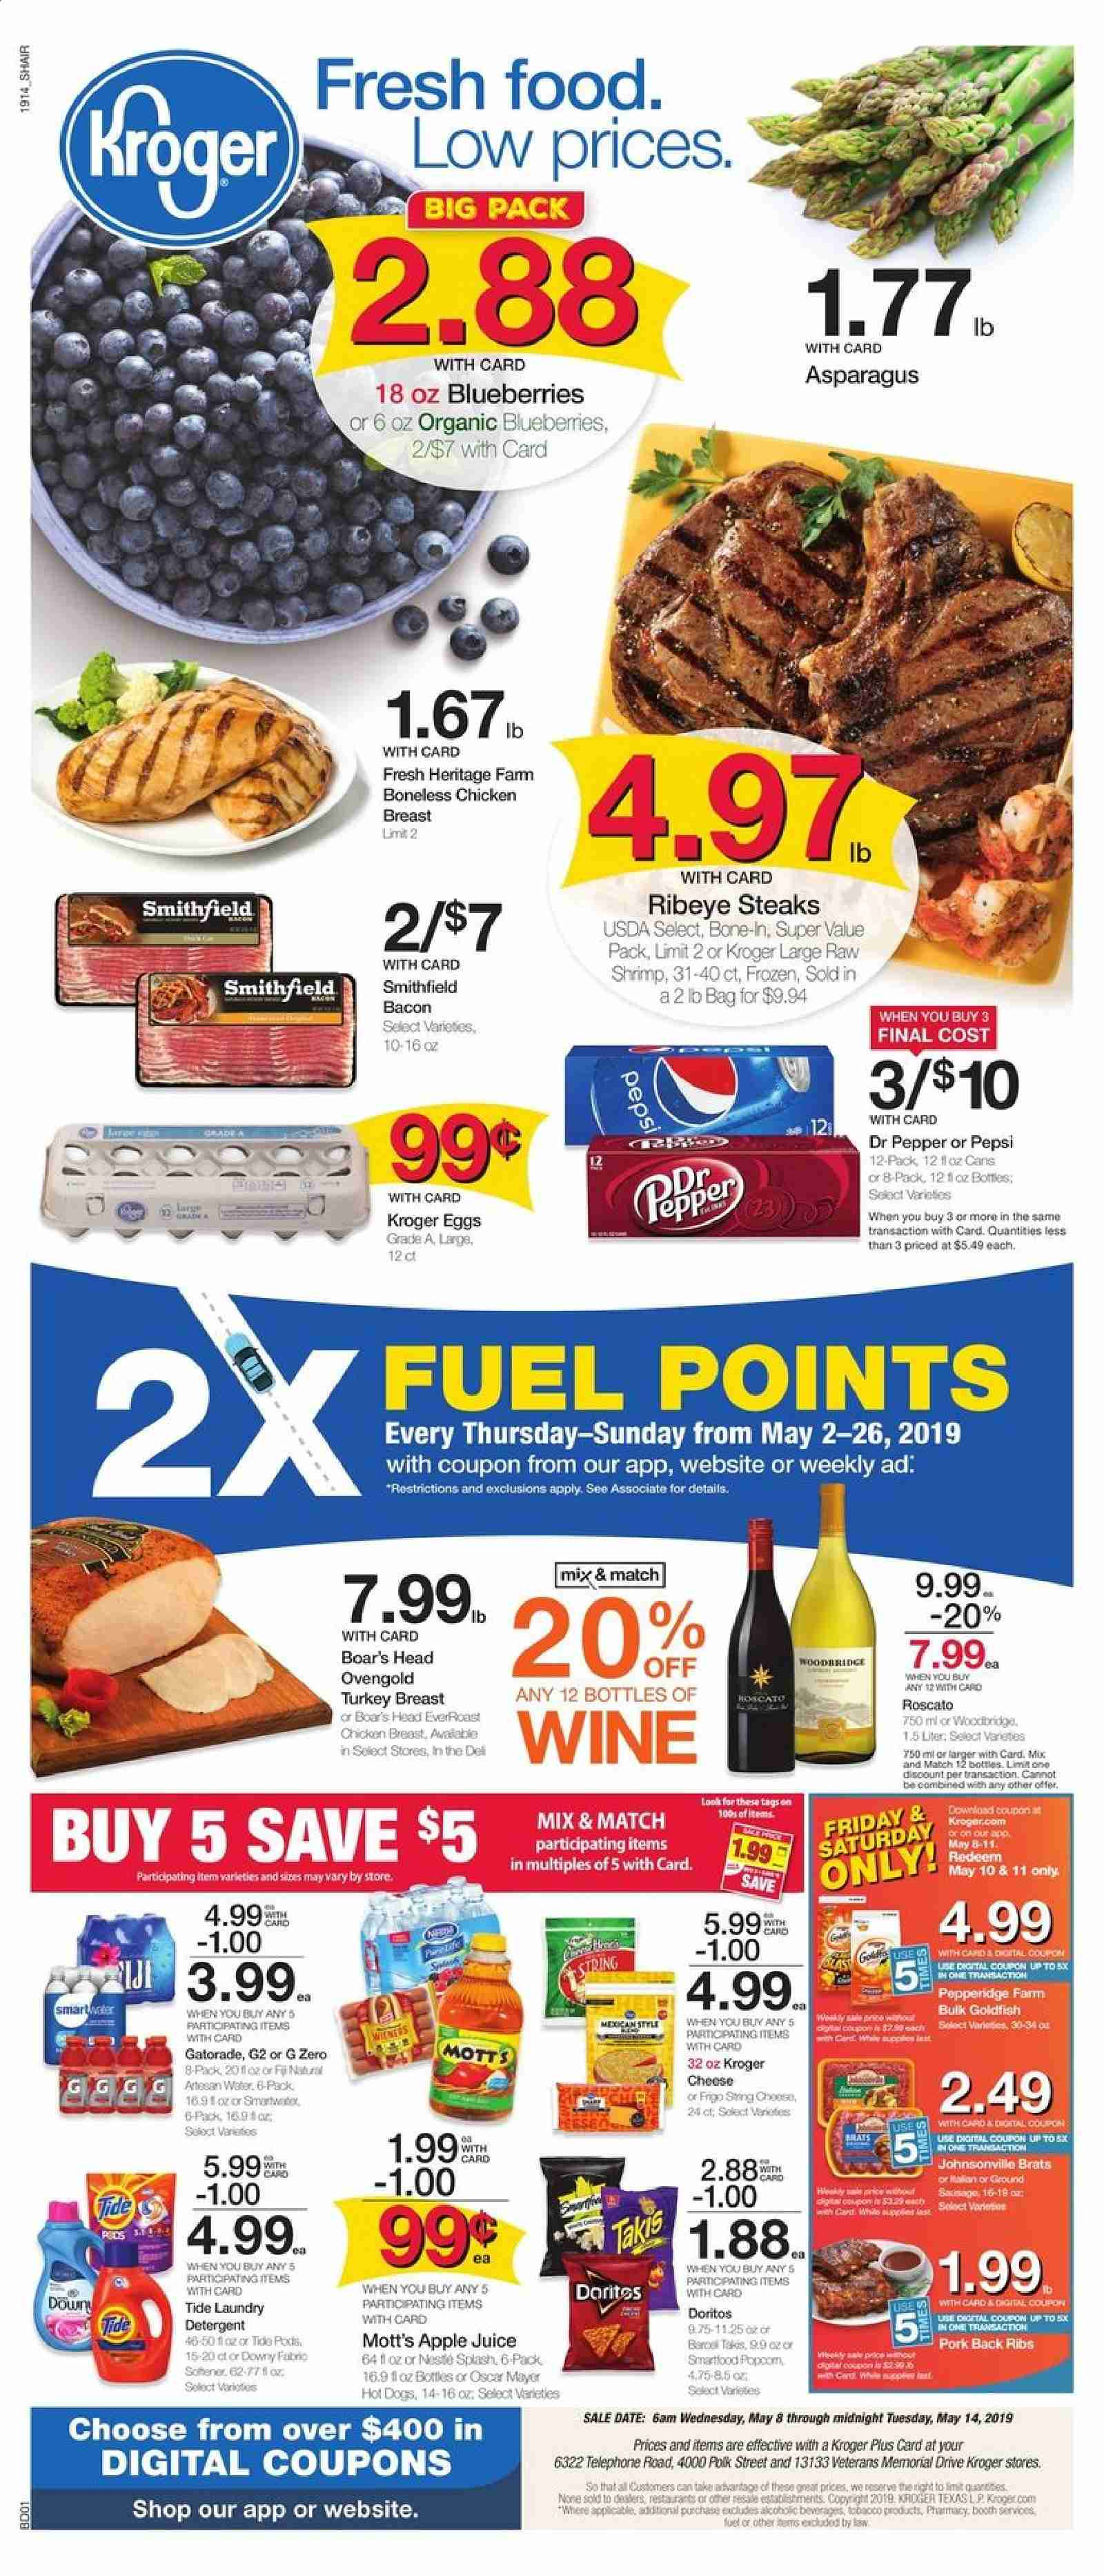 Kroger Flyer - 05.08.2019 - 05.14.2019 - Sales products - asparagus, blueberries, Apple, shrimps, hot dog, apple juice, juice, wine, turkey, turkey breast, chicken, chicken breast, pork meat, Downy, Tide, Frozen, fuel. Page 1.